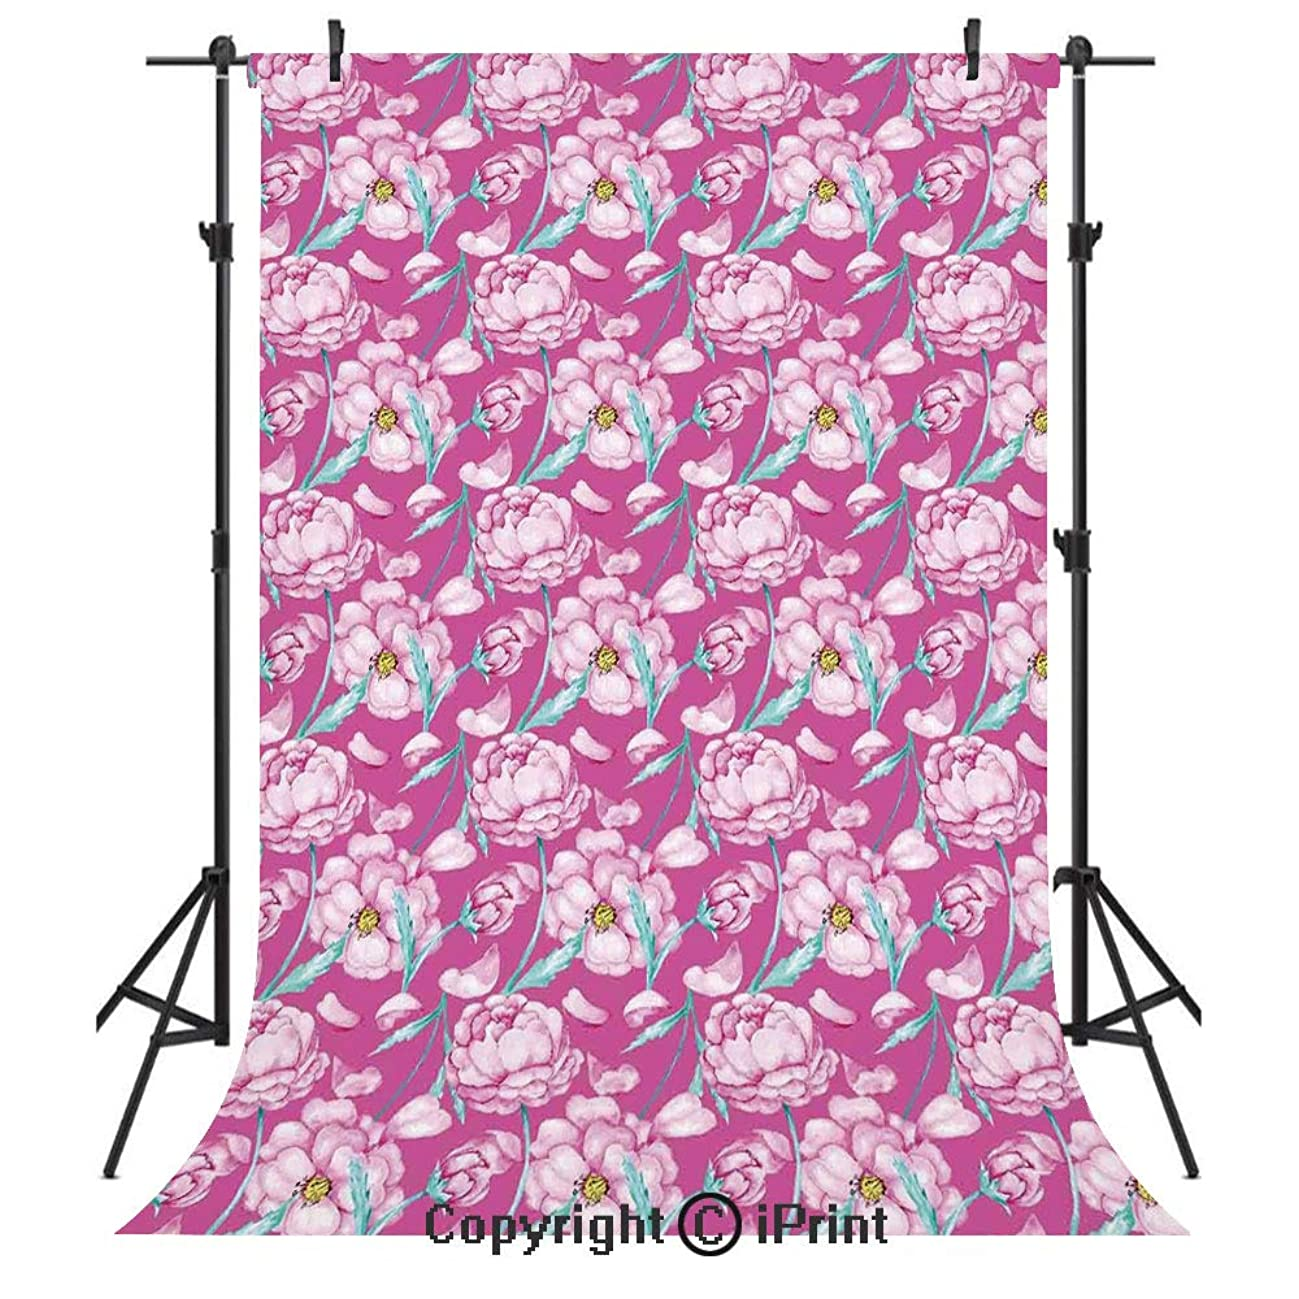 Magenta Decor Photography Backdrops,Peony Flowers Blossom in Vibrant Color Watercolor Japanese Feminine Bouquet Art,Birthday Party Seamless Photo Studio Booth Background Banner 6x9ft,Hot Pink